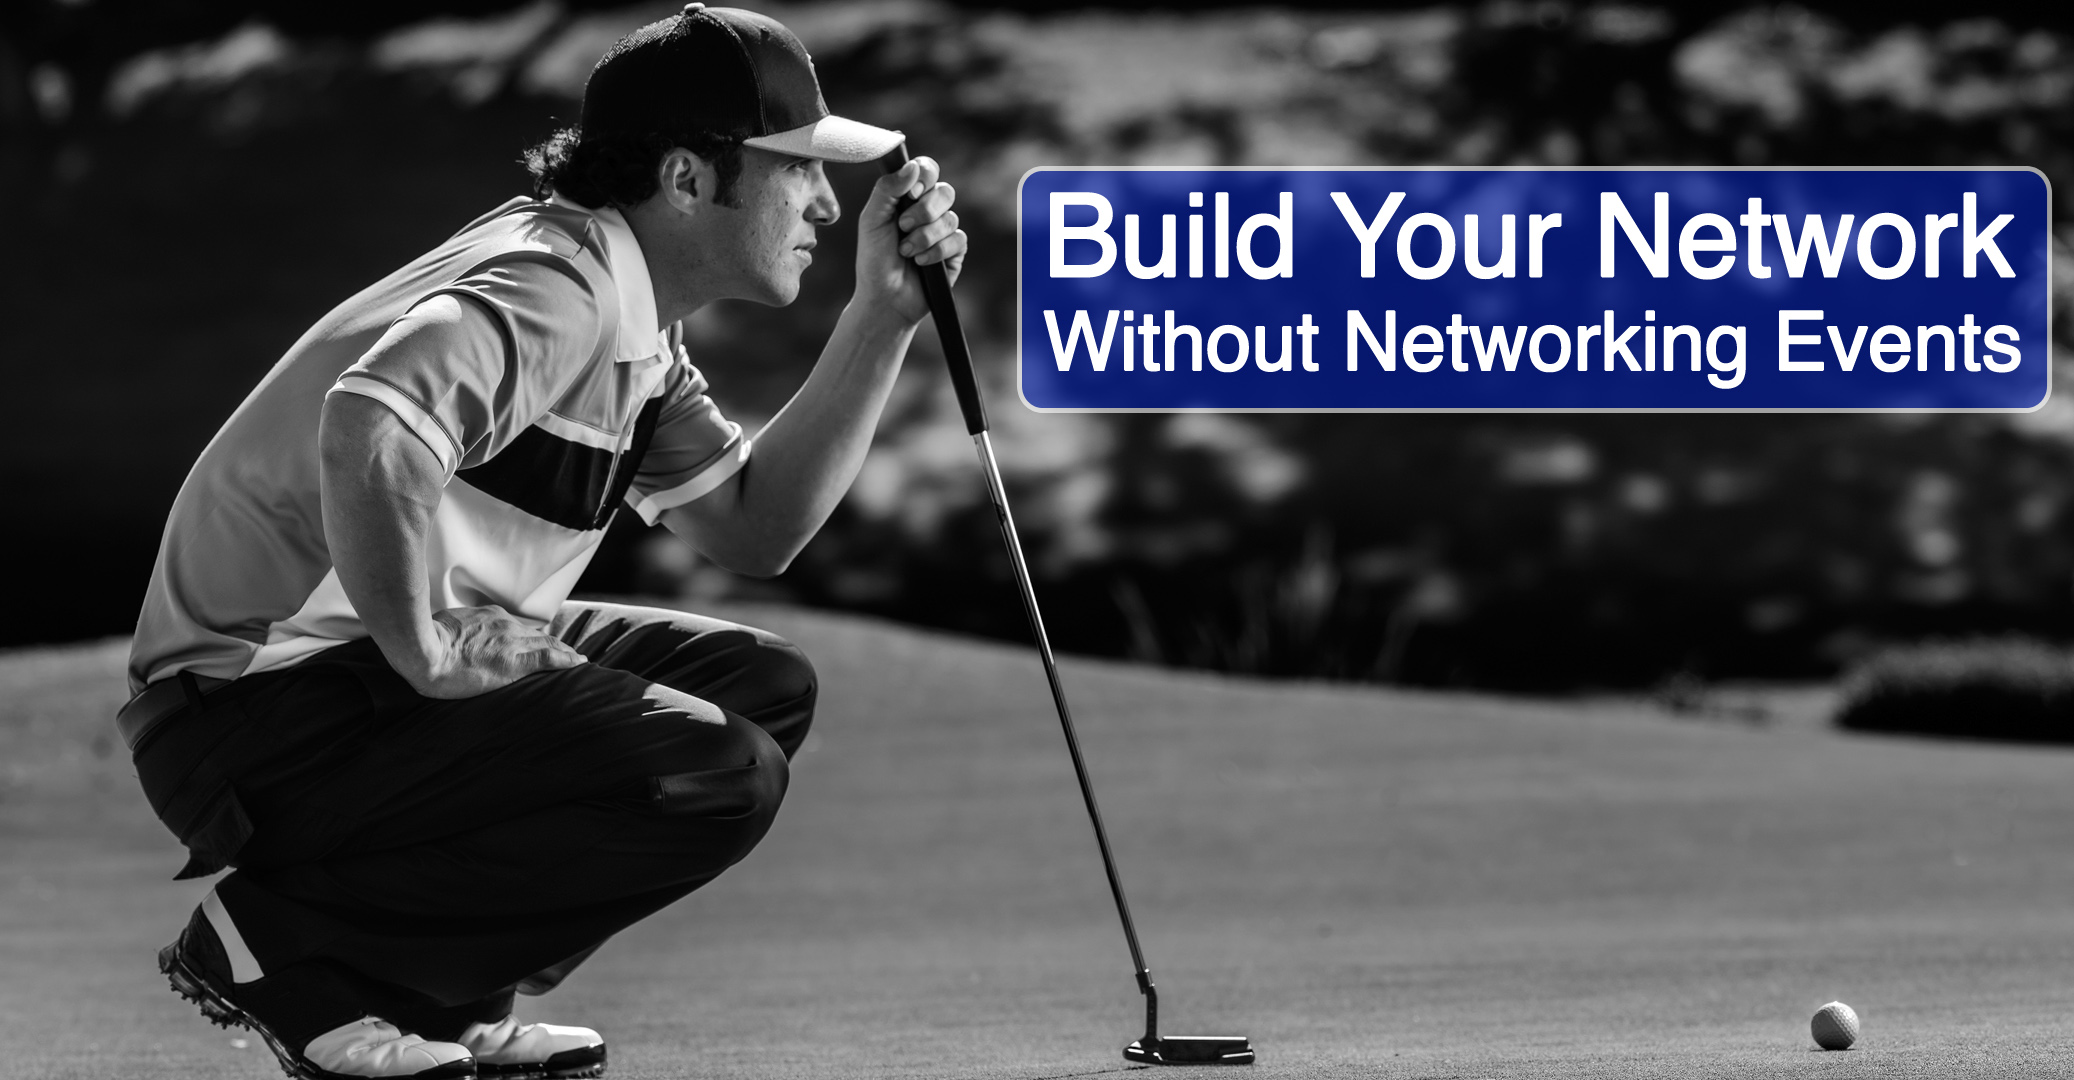 Build Your Network without Networking Events